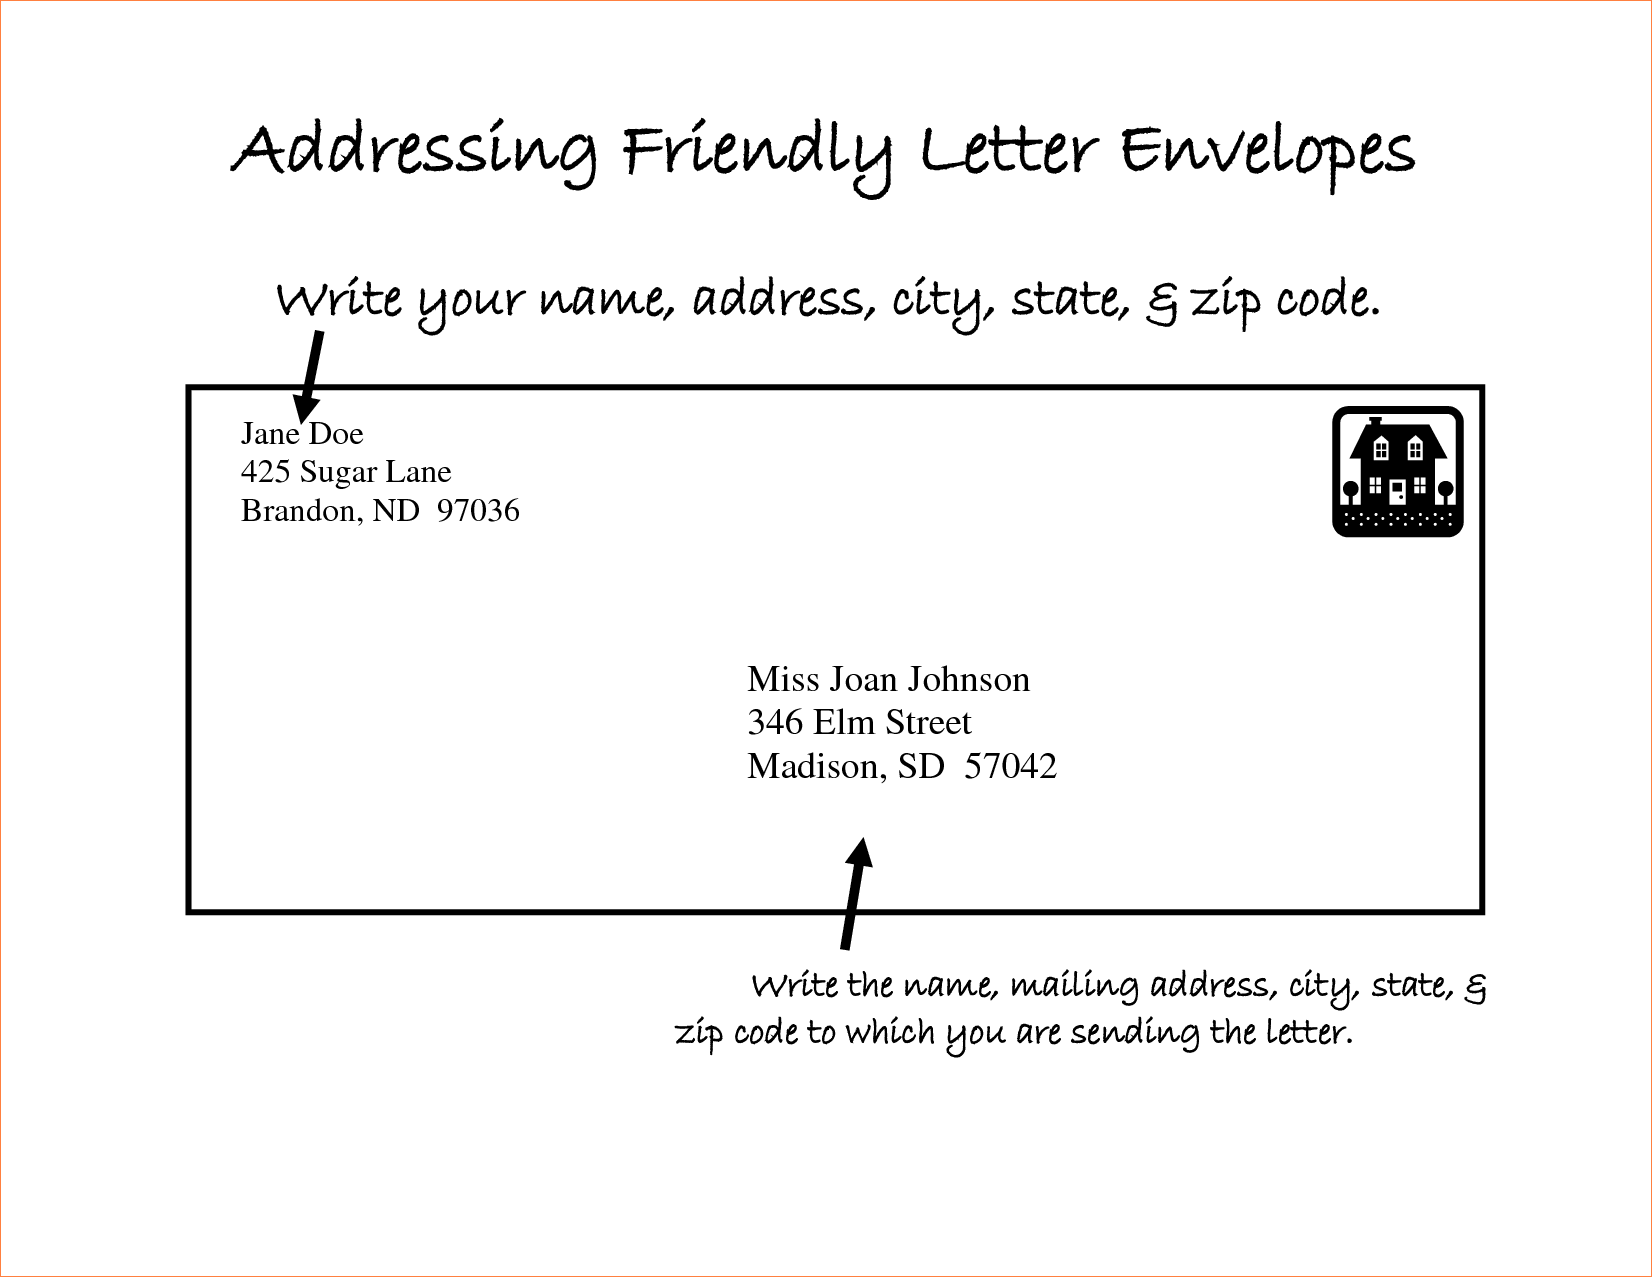 Letter Address Formatreport Template Document Report Sending The Same Inside Business Letter Addressing Envelope Lettering Addressing Envelopes